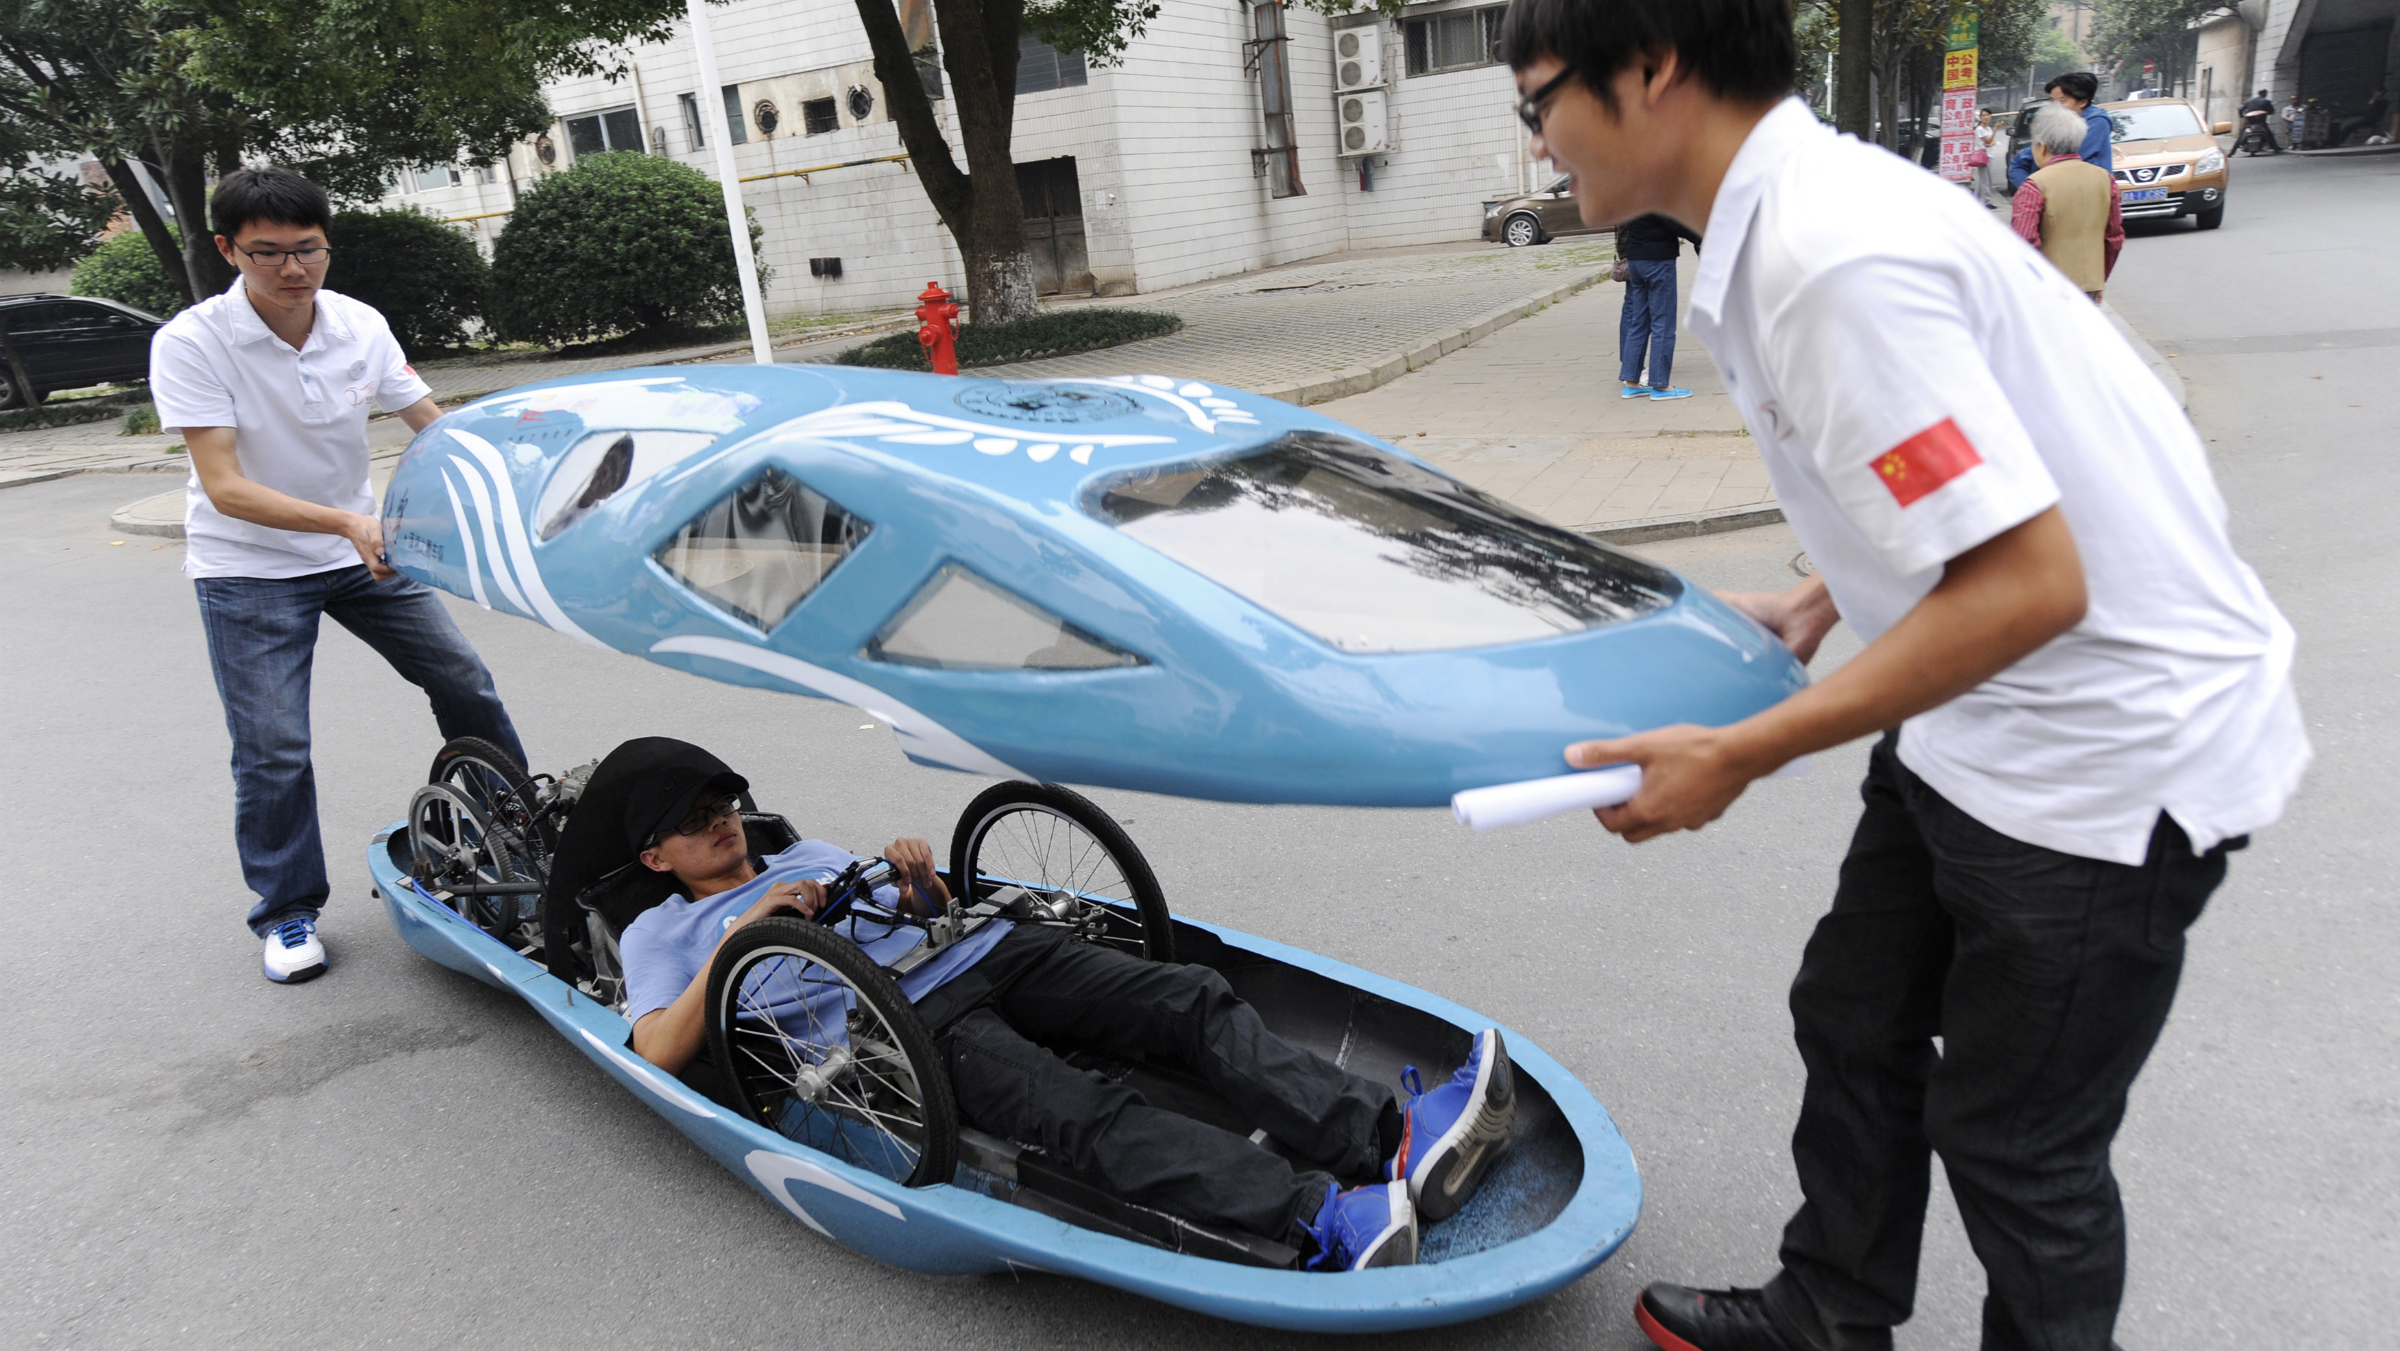 DATE IMPORTED:October 9, 2013Students open the top of a newly-made fuel-efficient vehicle on a street inside Hunan University after a test drive in Changsha, Hunan province October 8, 2013. A group of students at Hunan University designed and made the 2.85-metre-long innovative vehicle, which travels up to a maximum speed of 60km/h (37m/h), in six months with the cost of about 50,000 yuan ($8,168). The fuel-efficient vehicle, which is about 50 kilogram (110 lb) in weight, is able to travel 100 kilometres (62 miles) with one litre of gasoline, according to local media. Picture taken October 8, 2013. REUTERS/Stringer